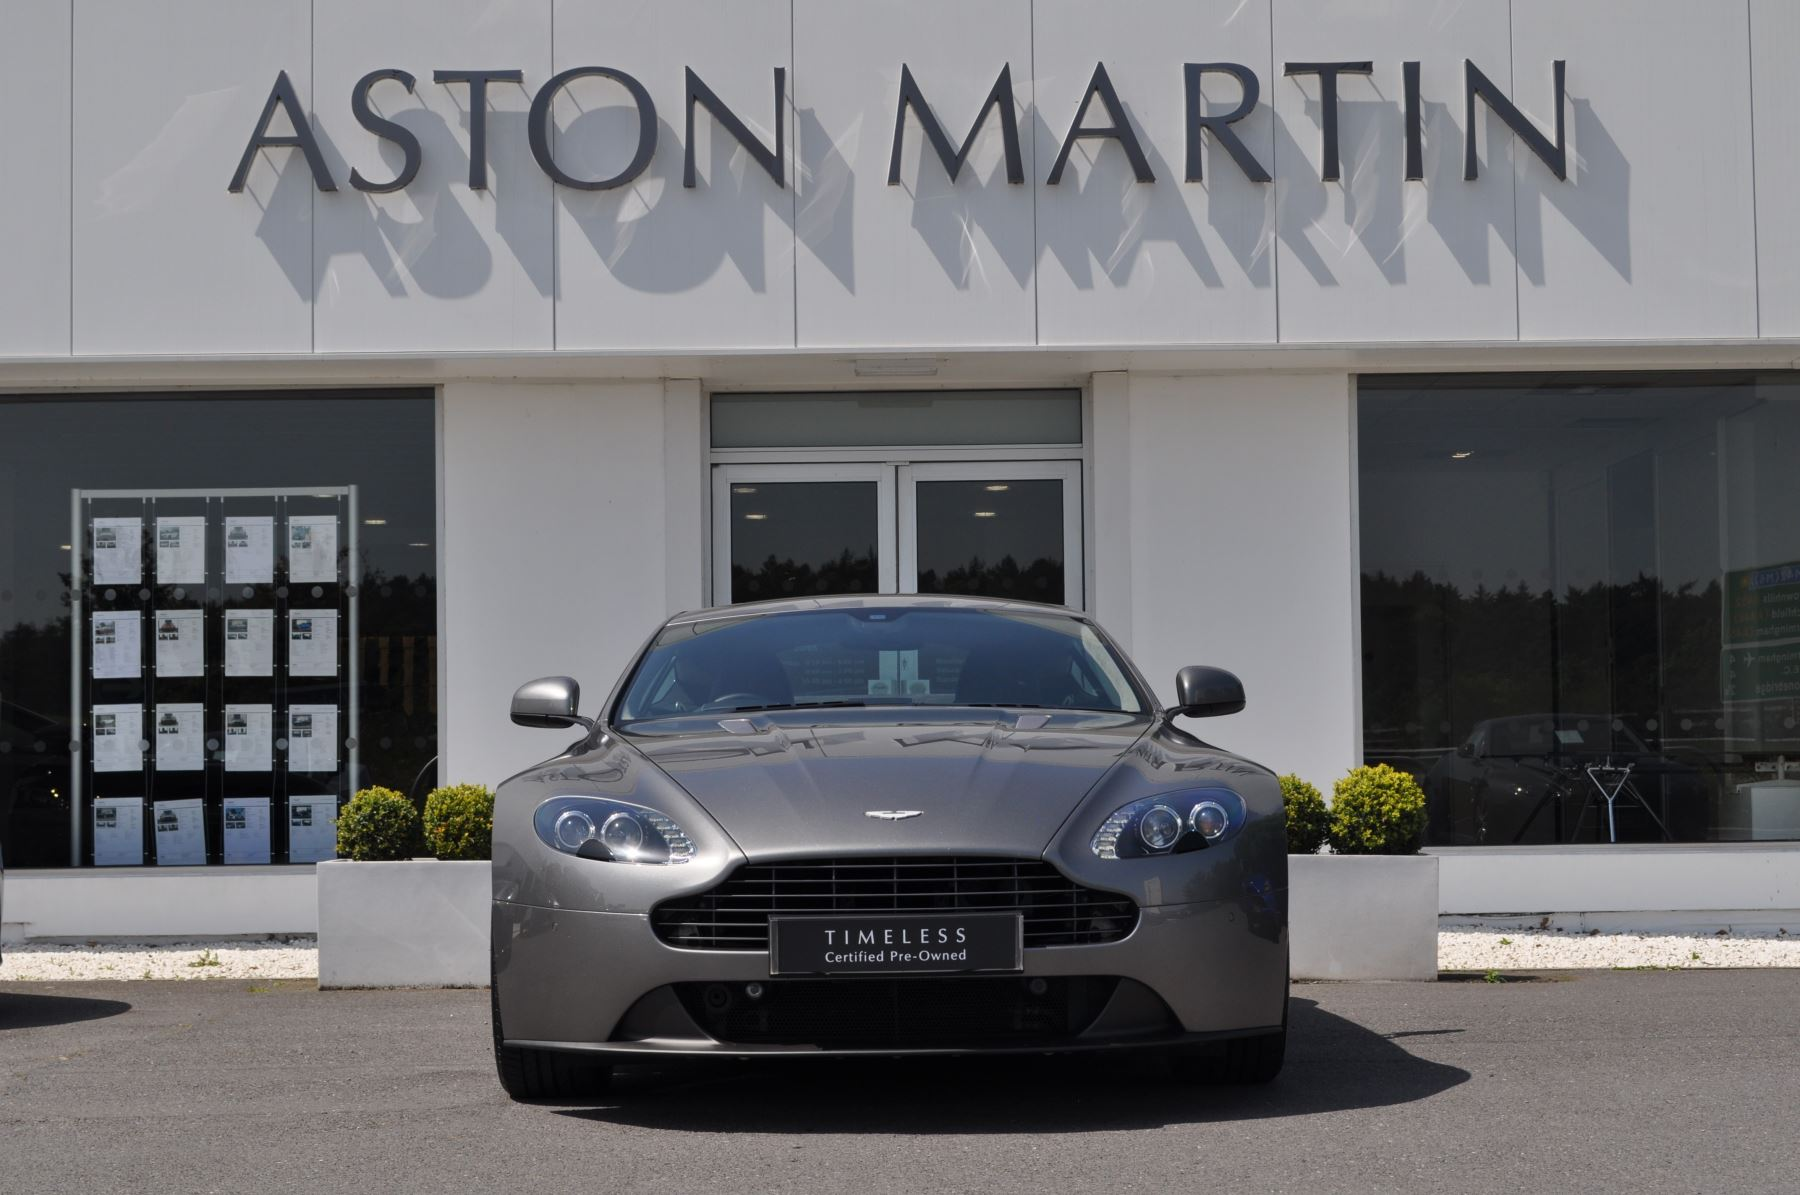 Aston Martin V8 Vantage Coupe 2dr [420] 4 7 3 door Coupe (2013) available  from Aston Martin Brentwood